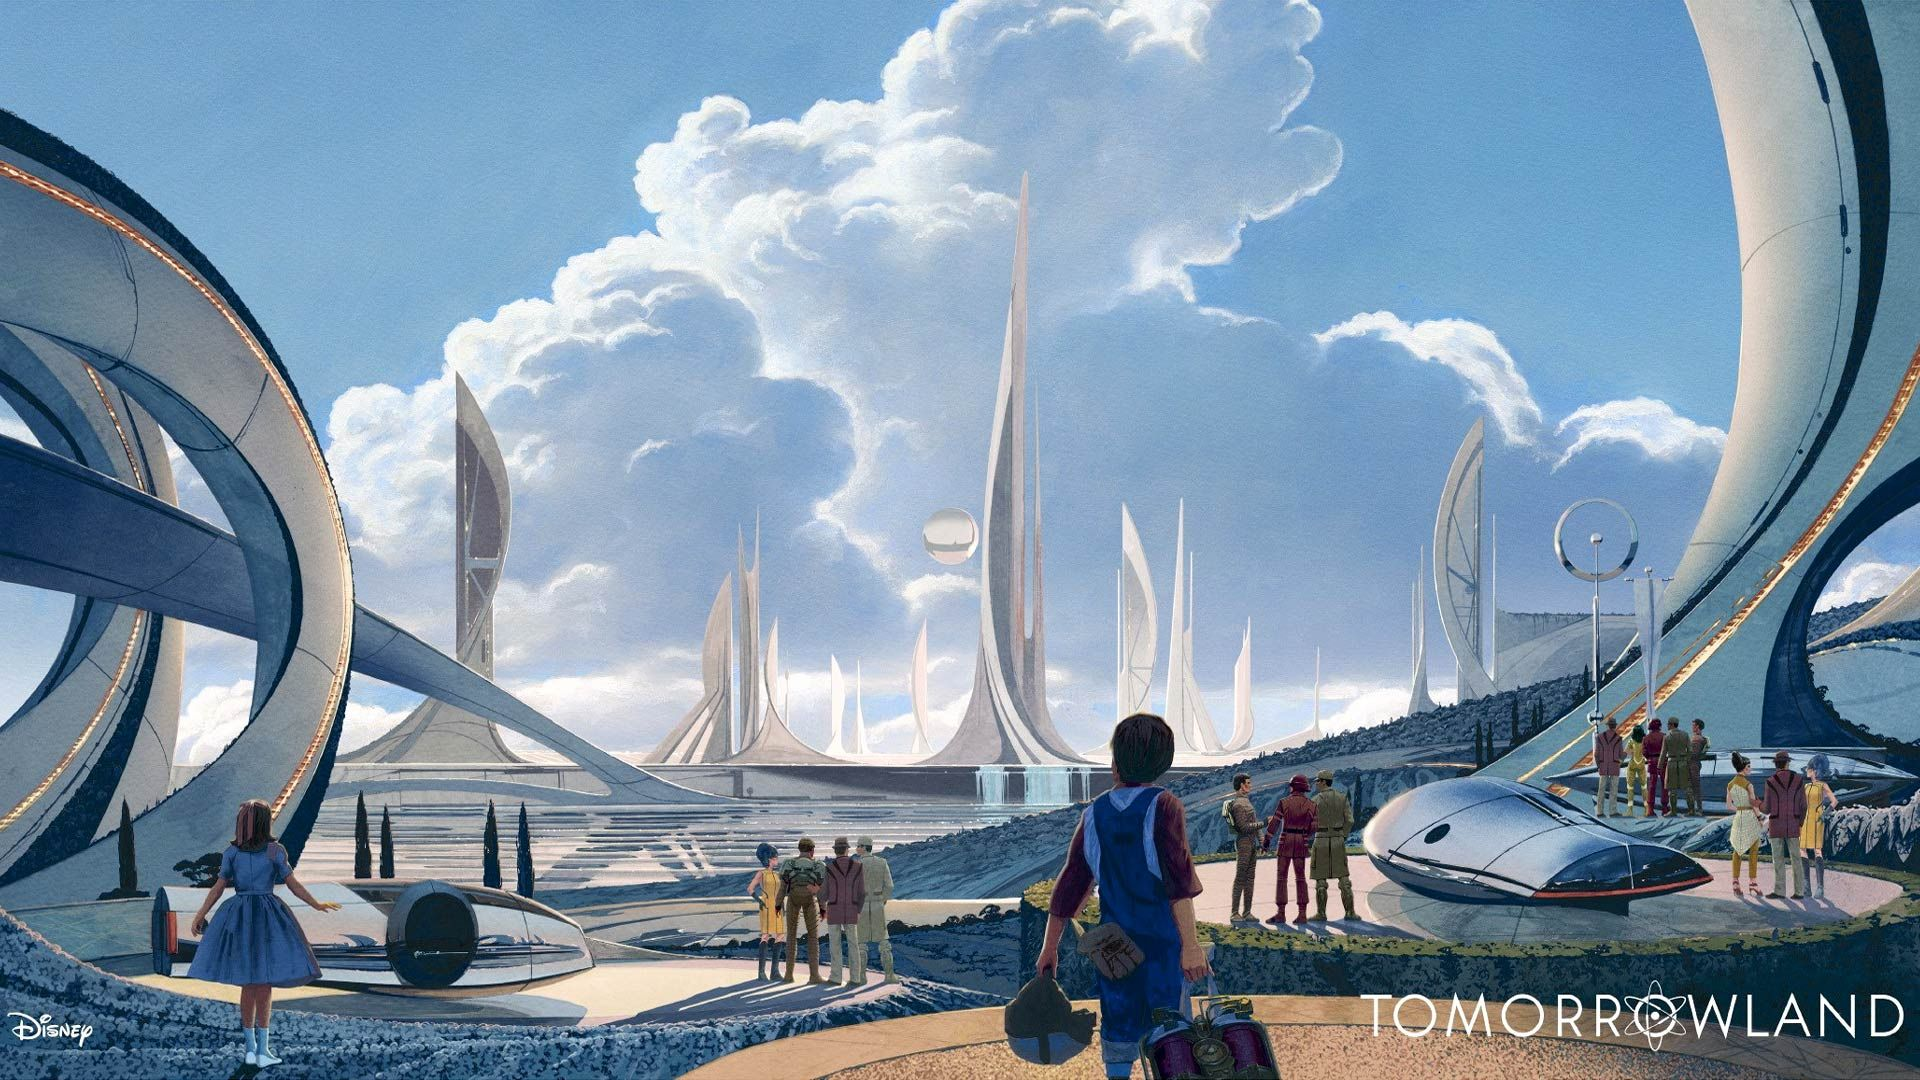 Tomorrowland Movie Wallpapers wallpapers Tomorrowland film Syd uk